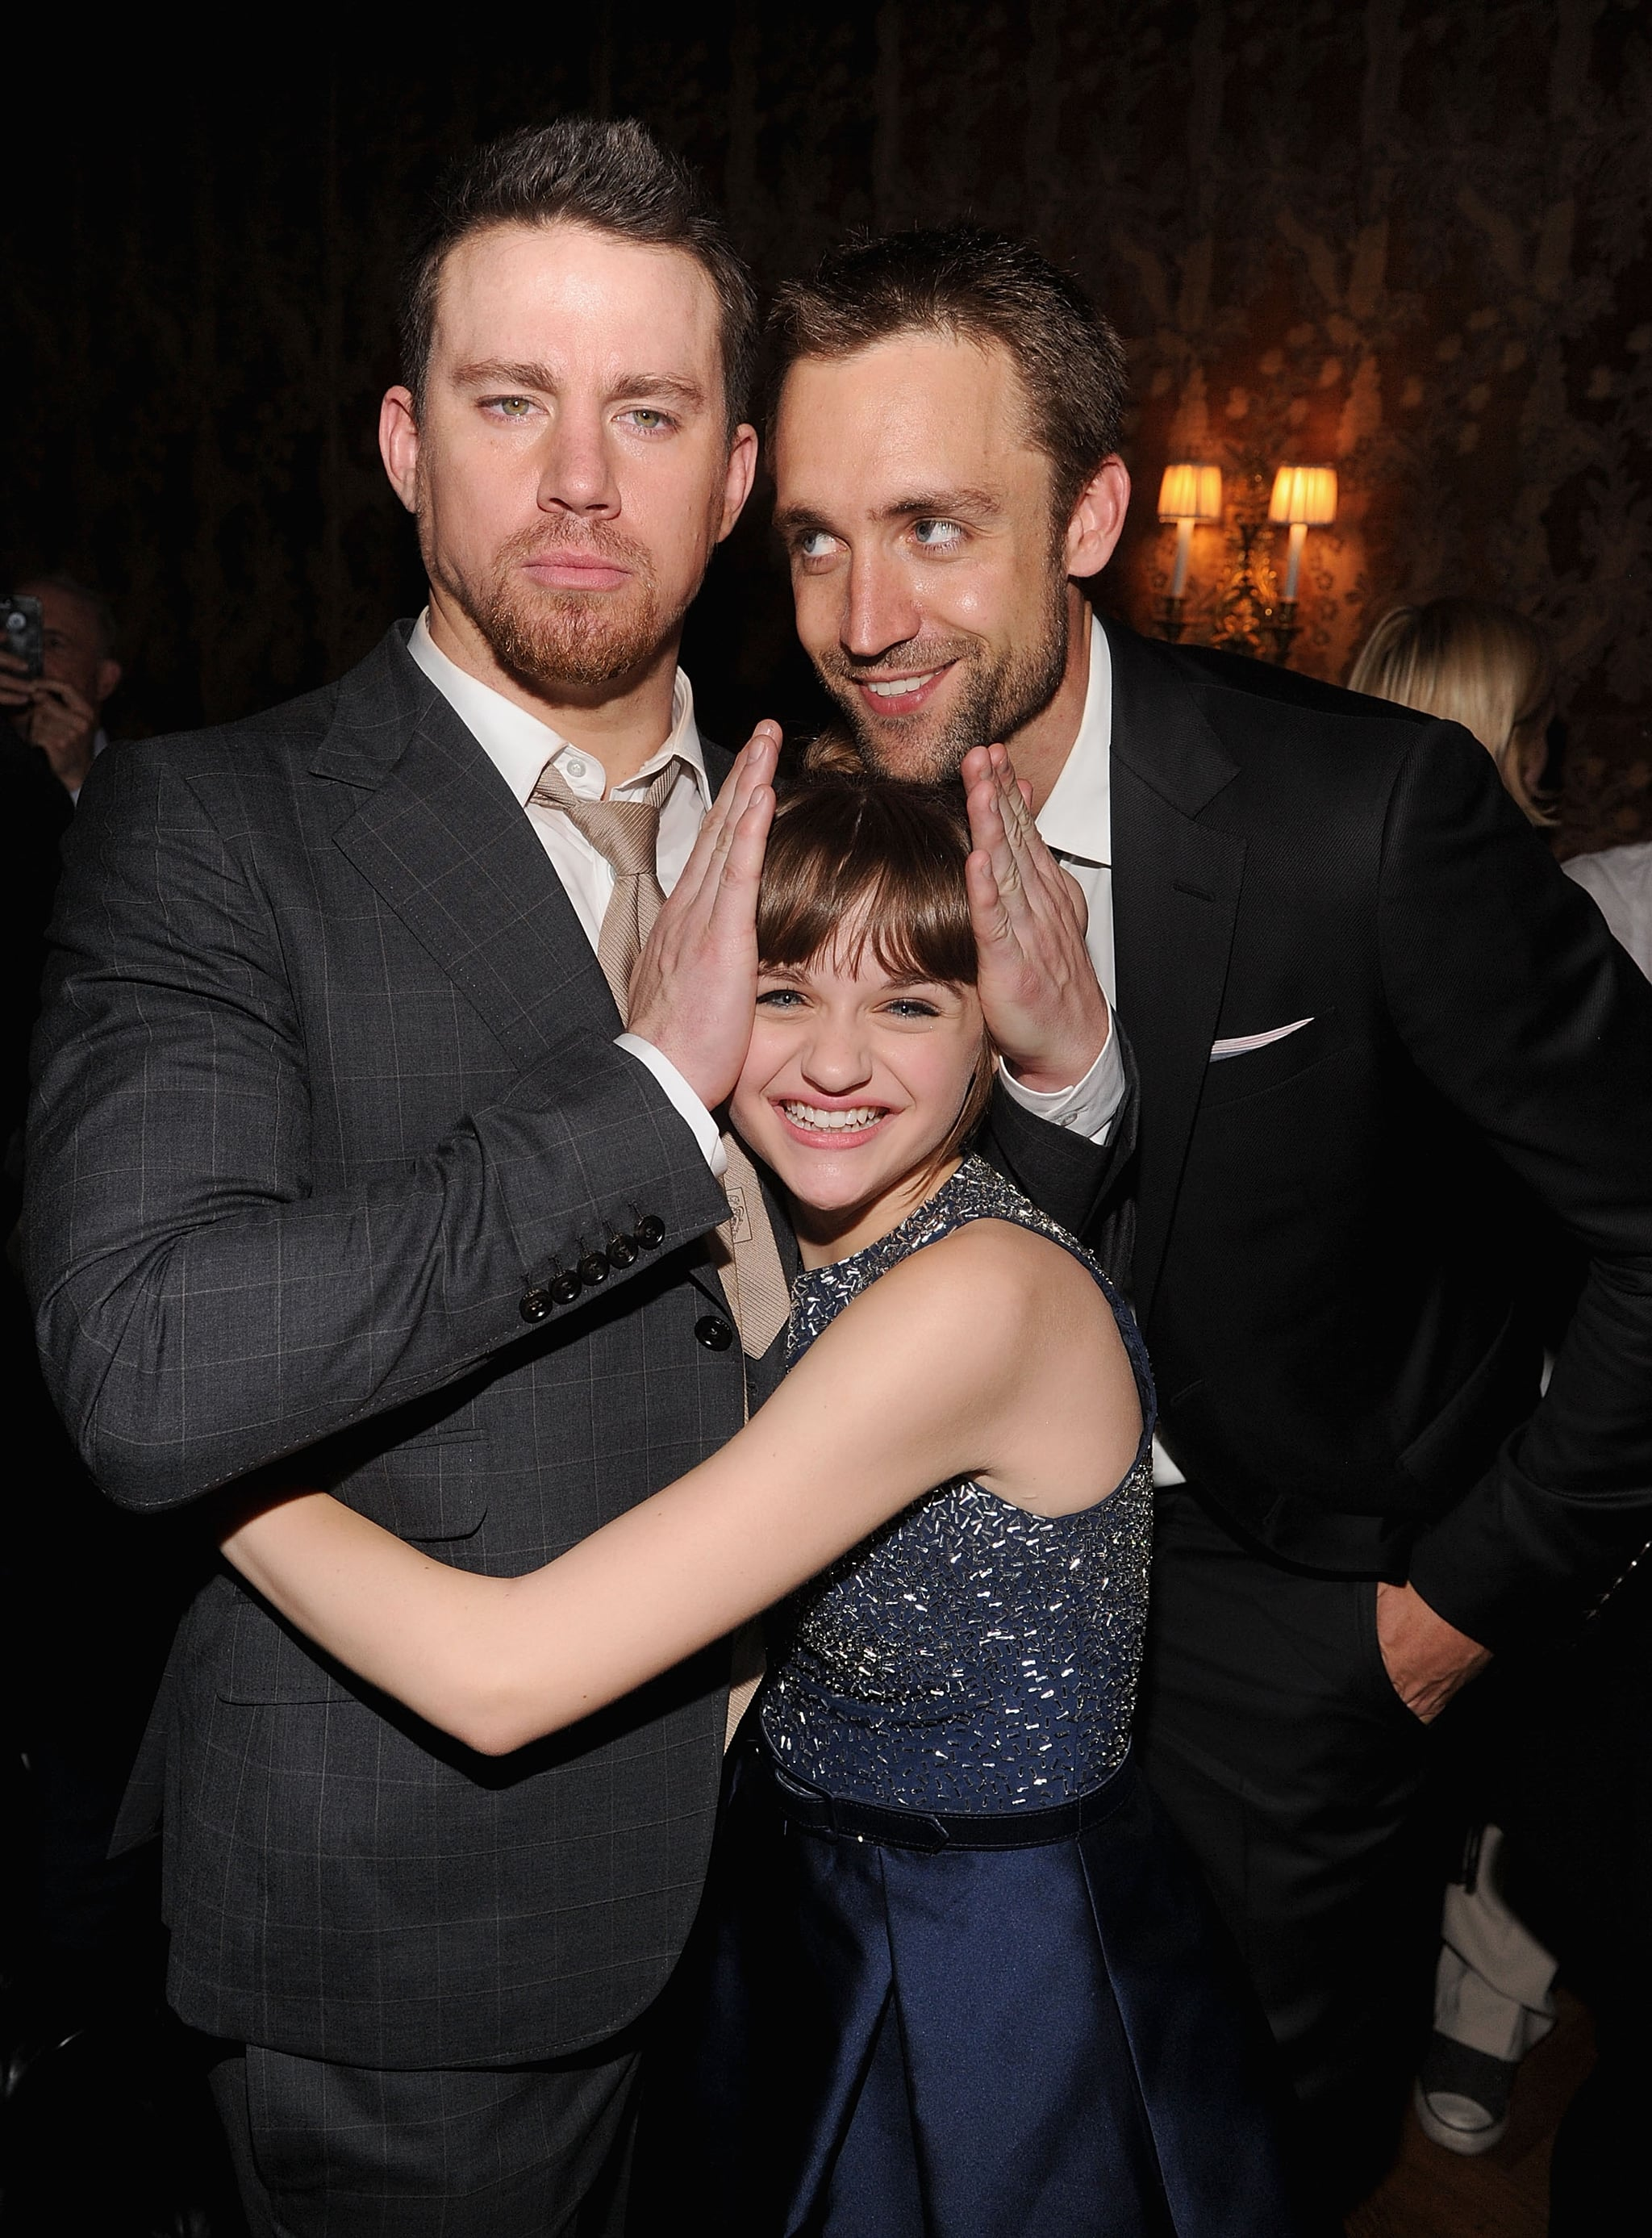 Channing Tatum joked with his costar Joey King and his producing partner Reid Carolin at the afterparty of their White House Down premiere in NYC.